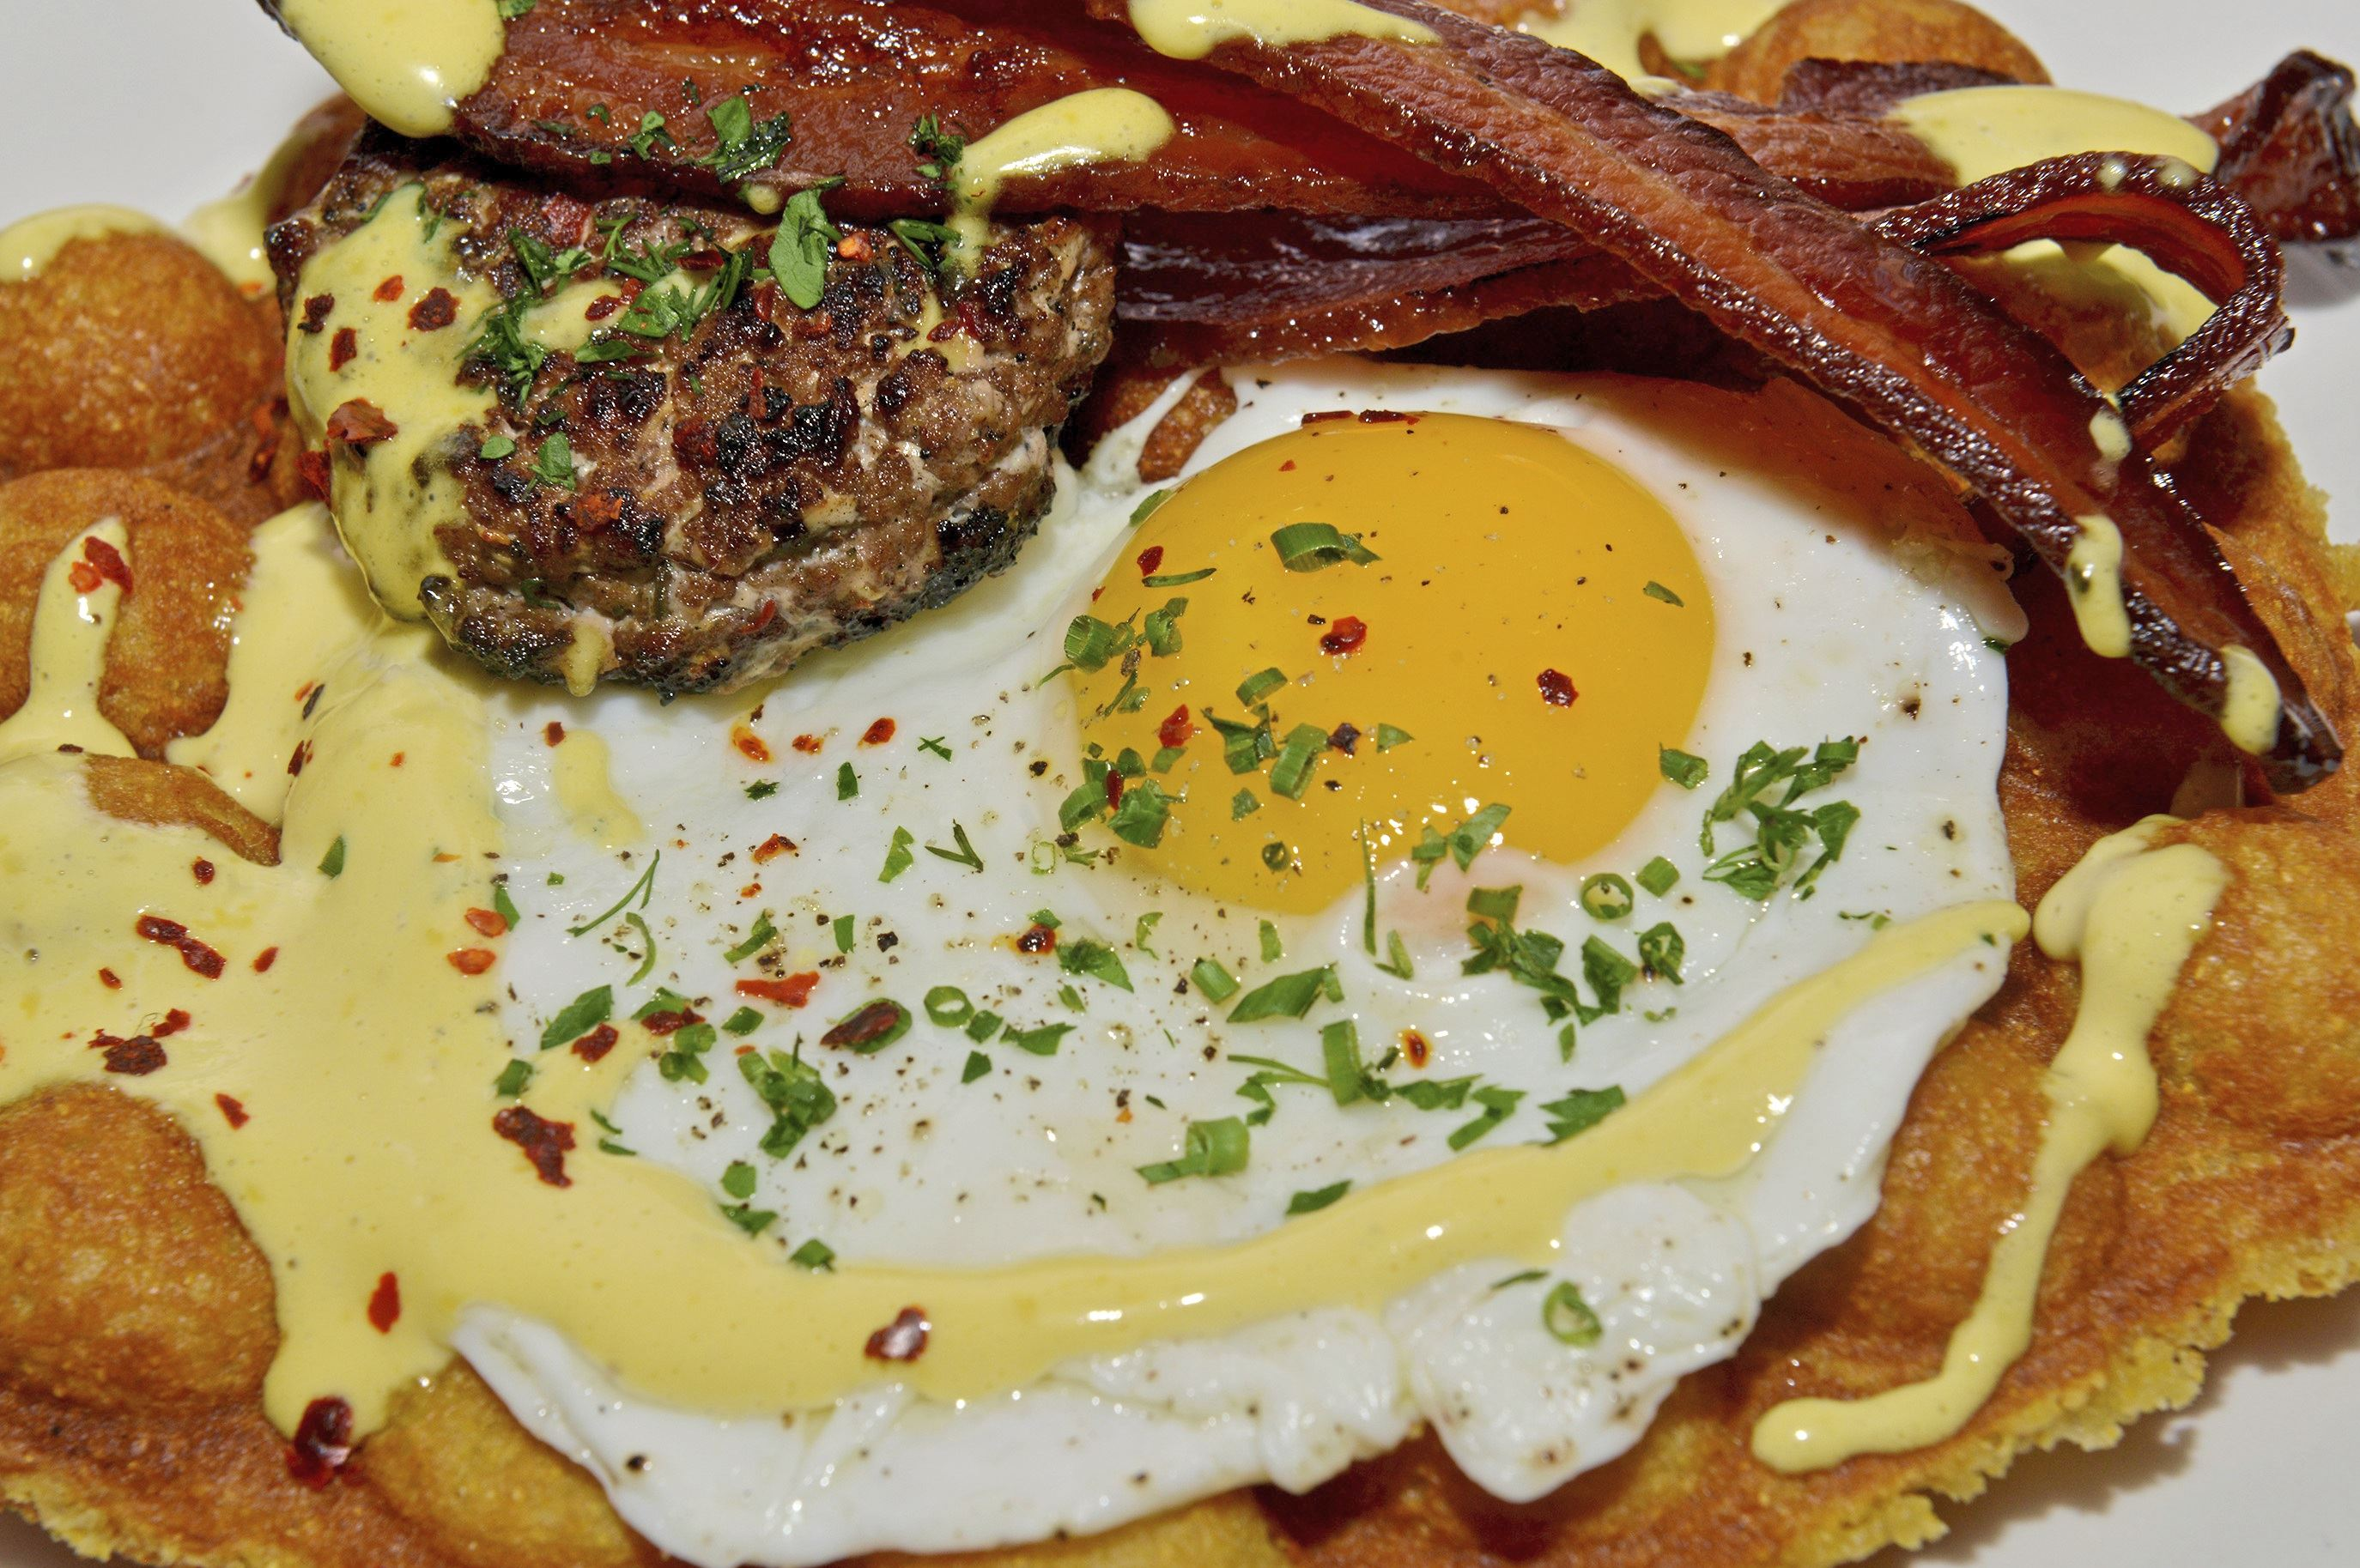 20171101ppTheWhale7MAG-10 Savory bubble waffles with bacon, fried egg, sausage, potatoes and Hollandaise prepared by Dennis Marron at or, The Whale in the Distrikt Hotel, Downtown.